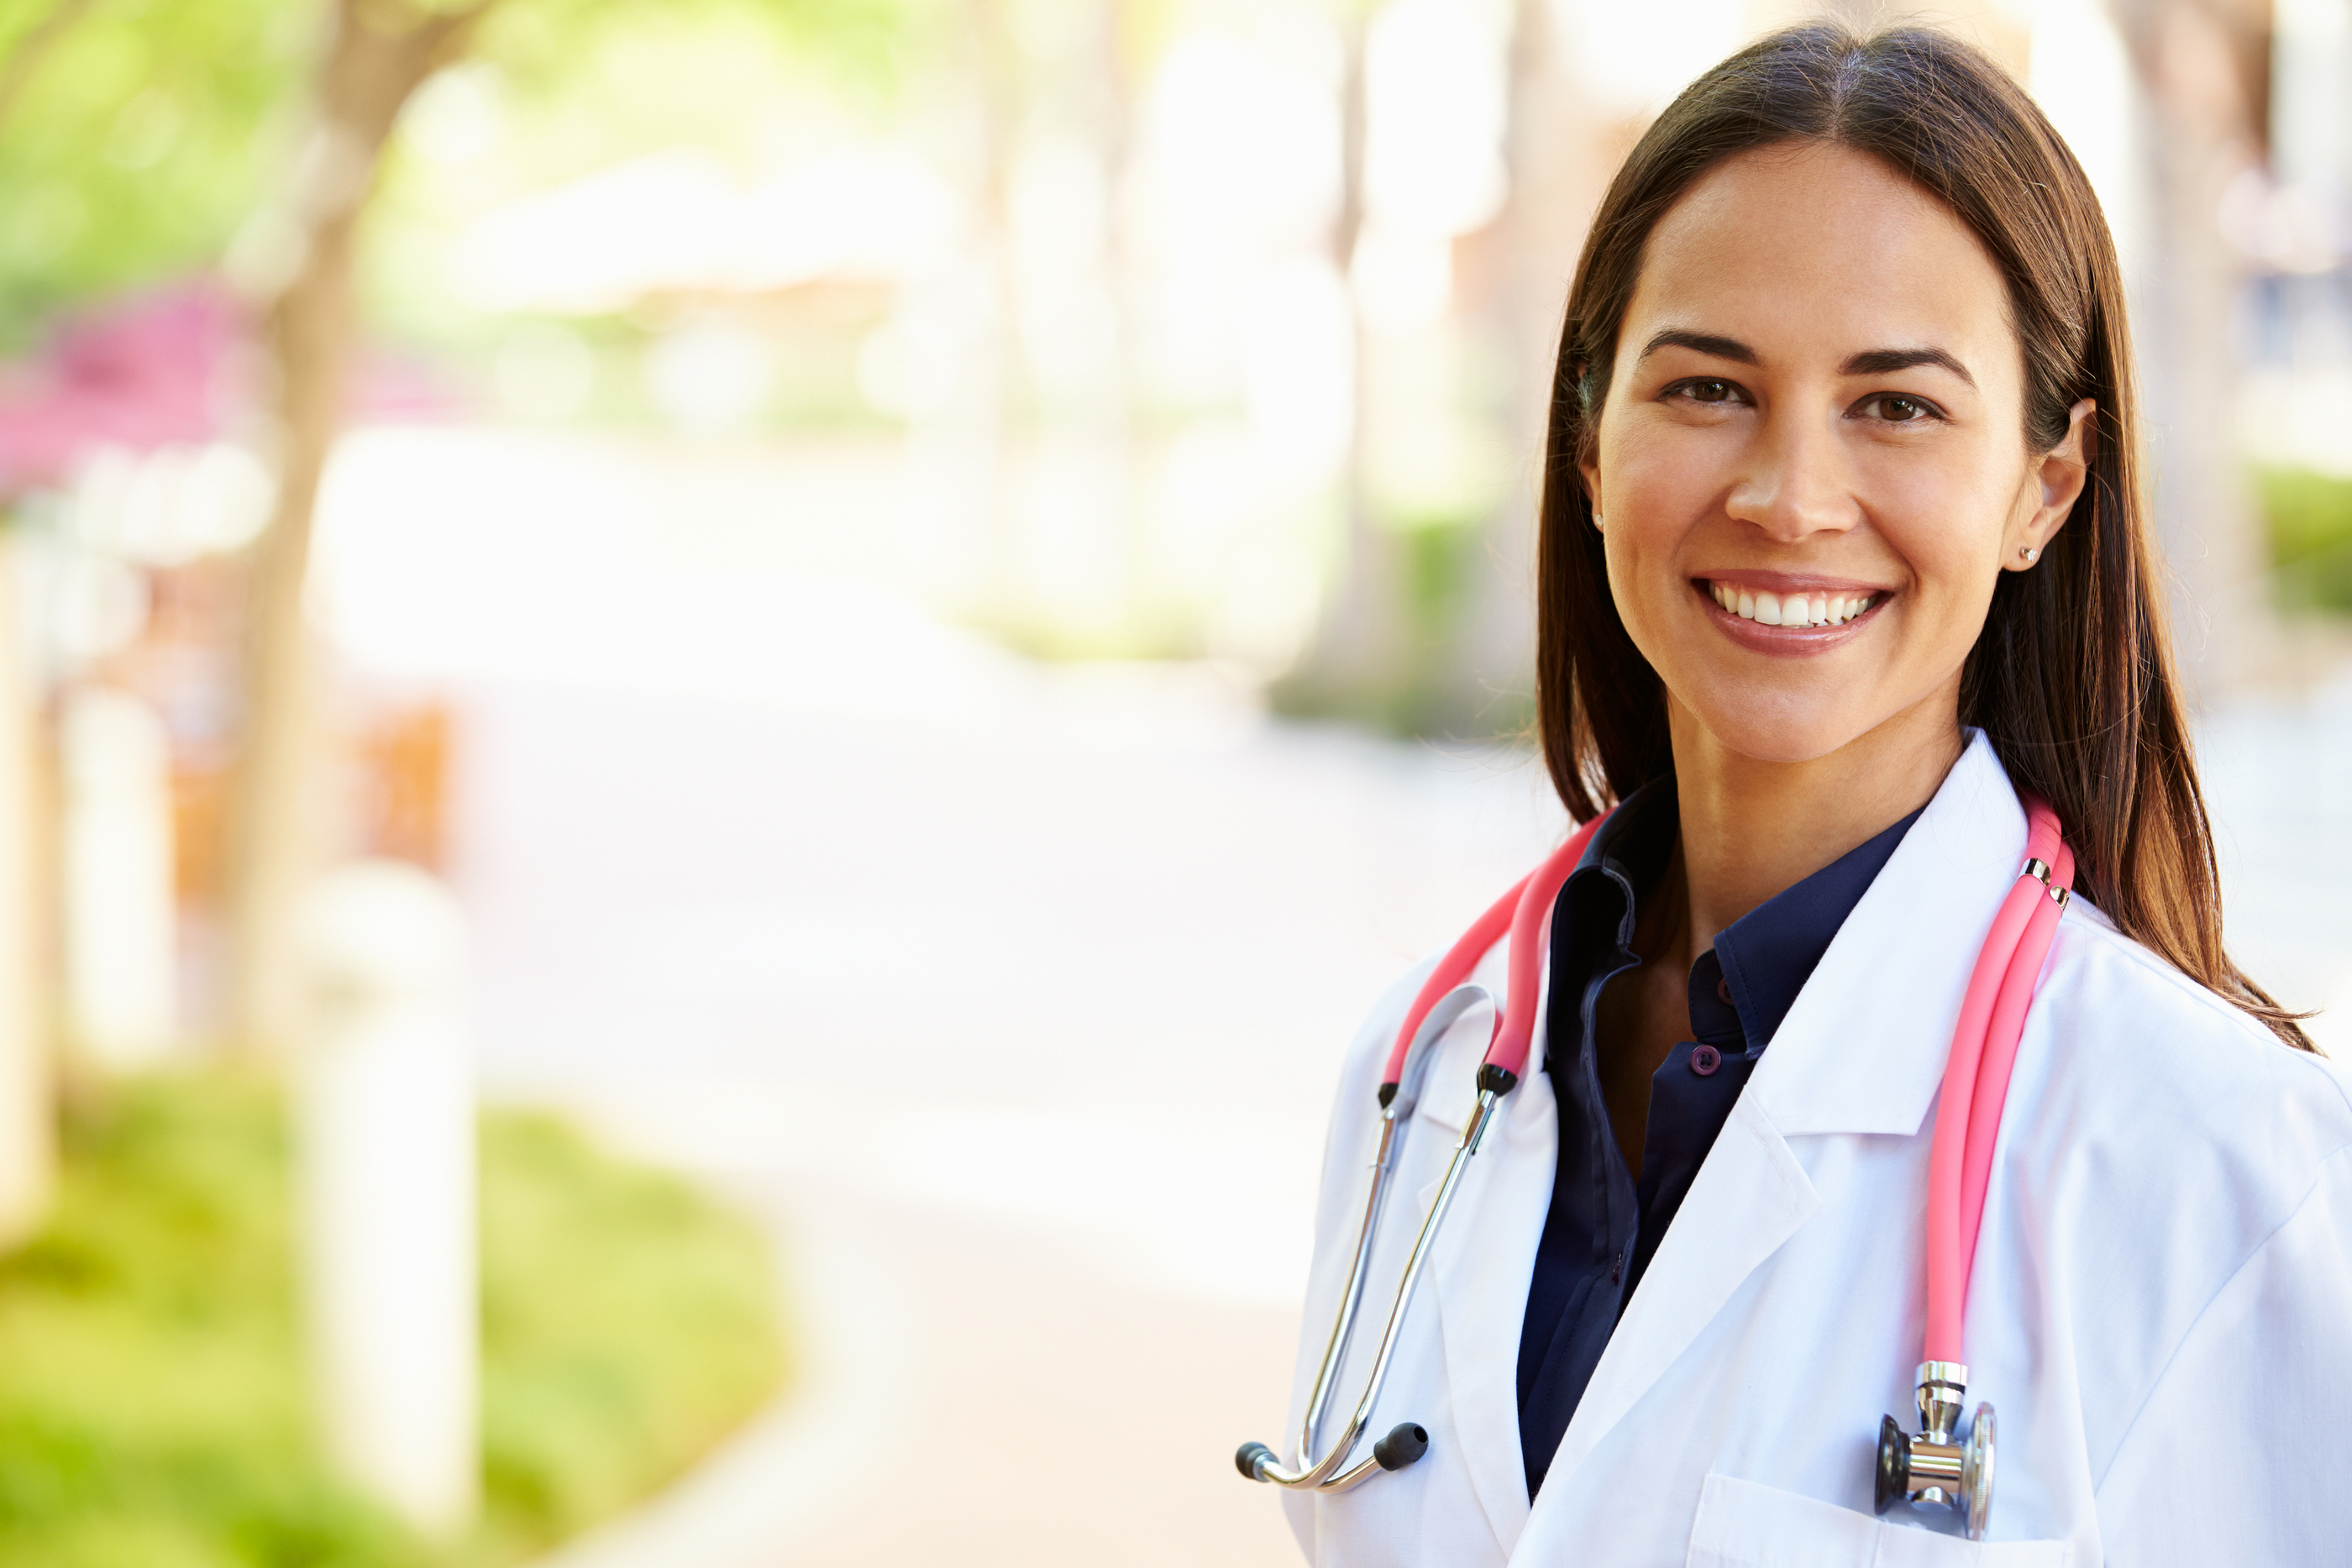 bigstock-Outdoor-Portrait-Female-Doctor-55986122-2